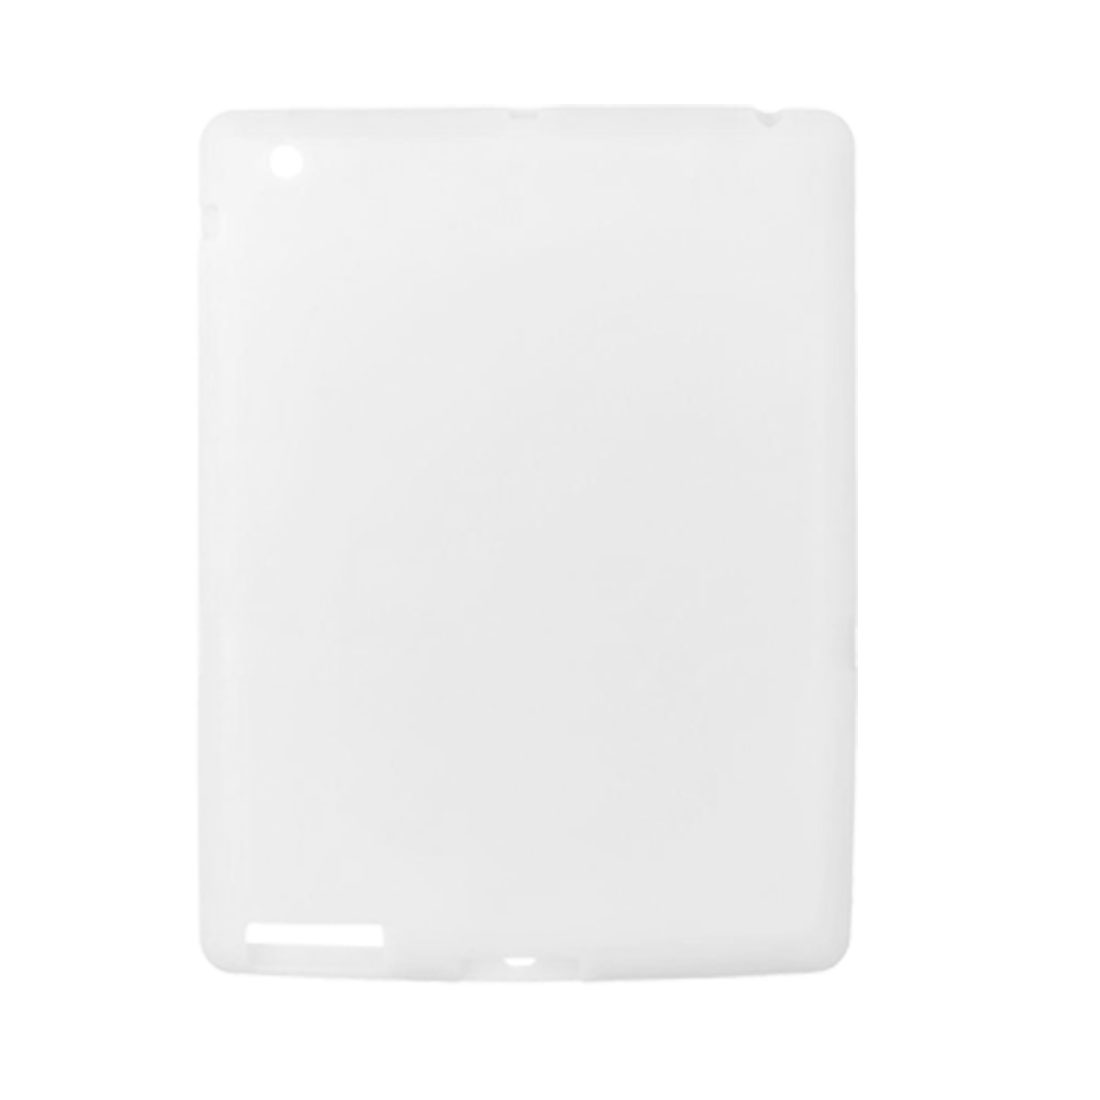 Clear White Silicone Skin Protective Case for Apple iPad 2